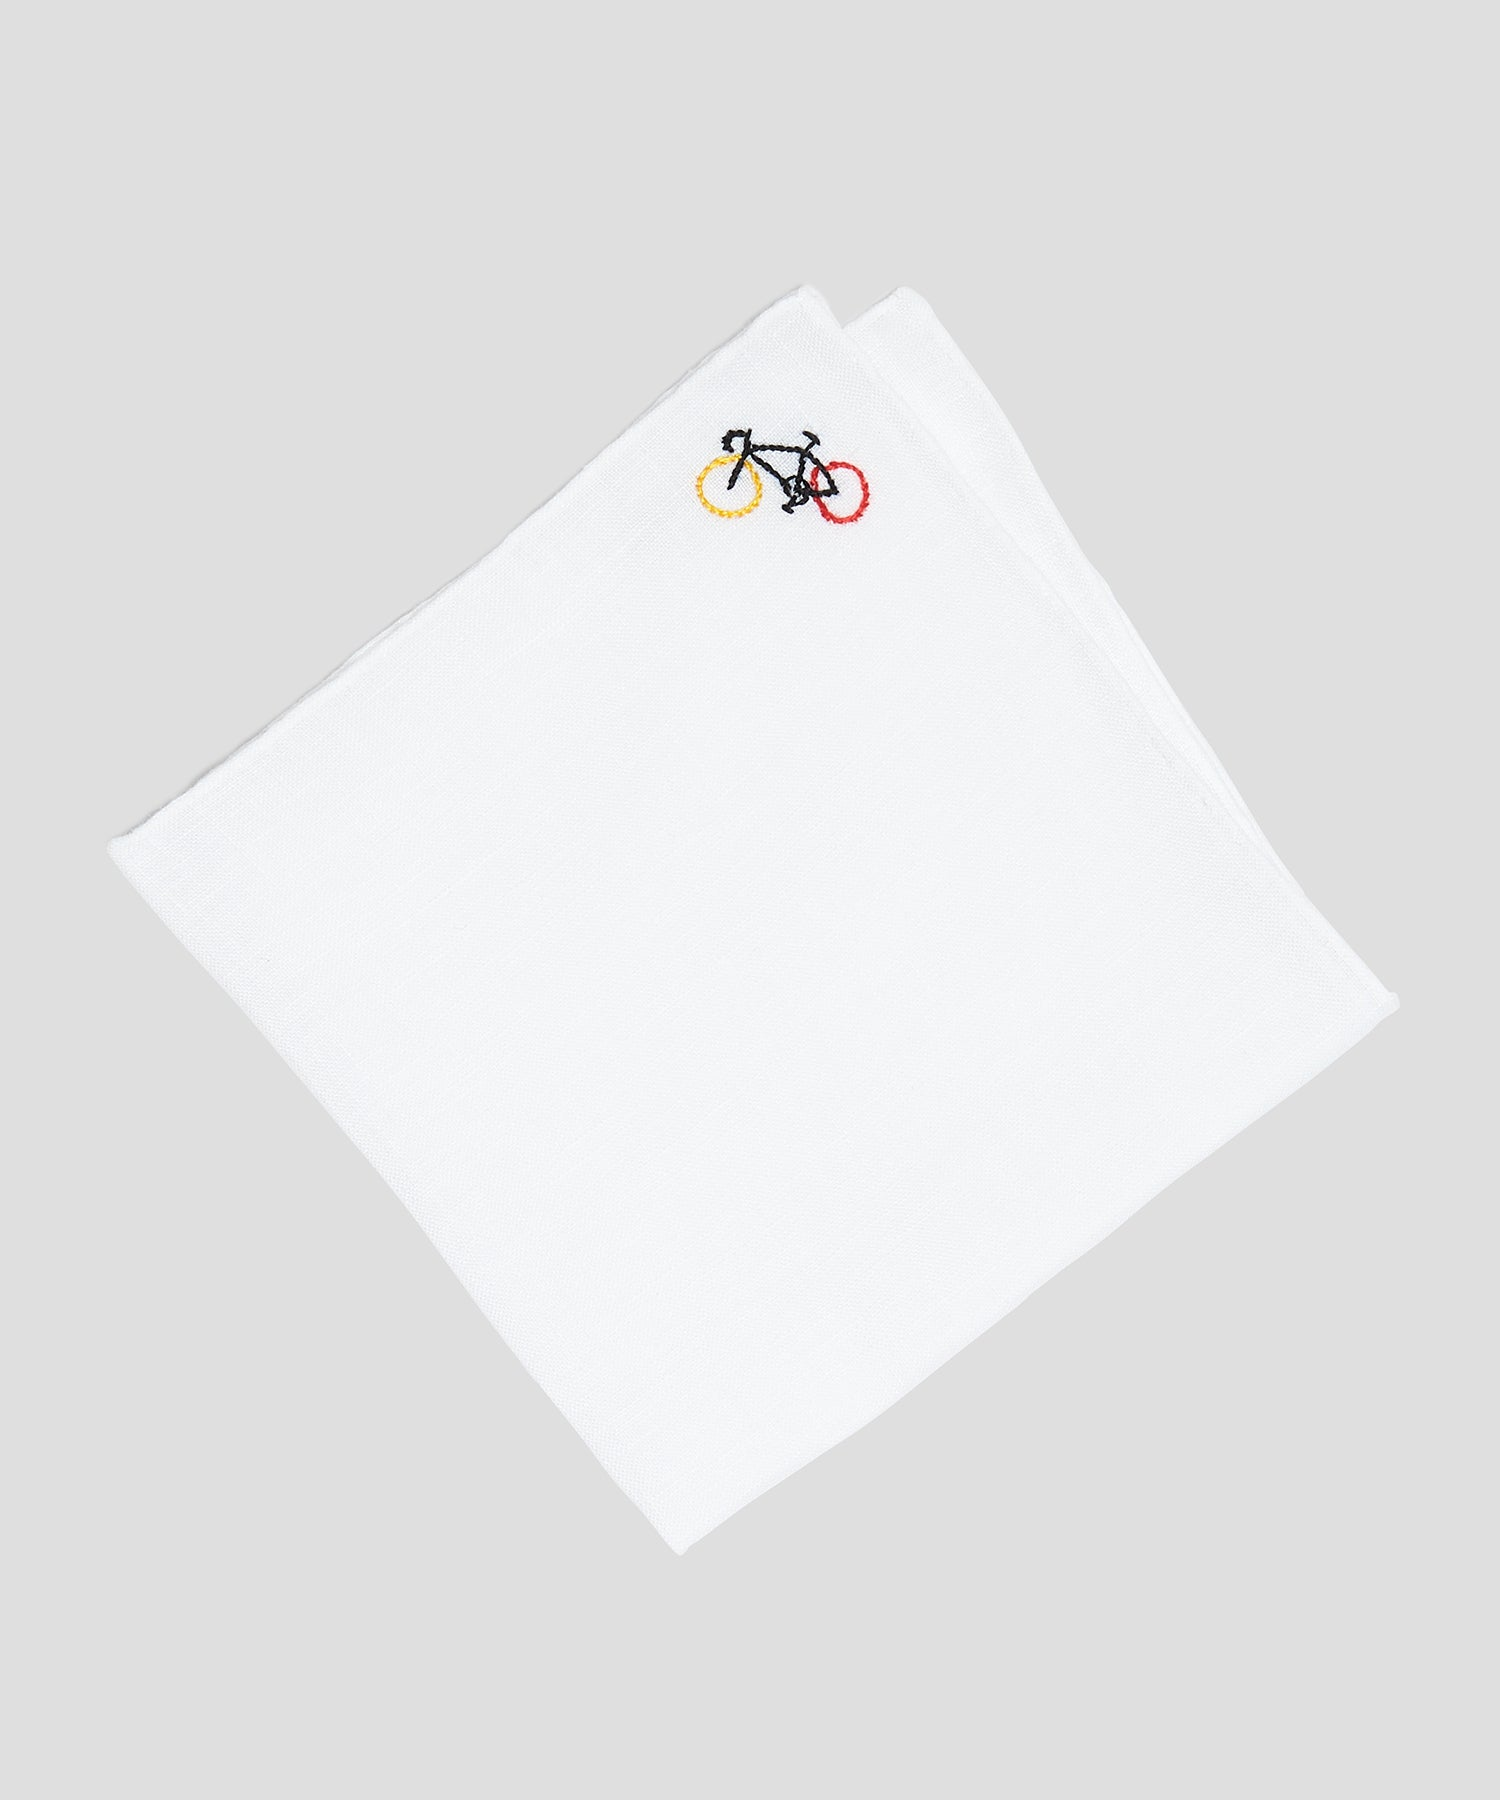 Handmade Italian Linen Pocket Square with Bicycle Embroidery